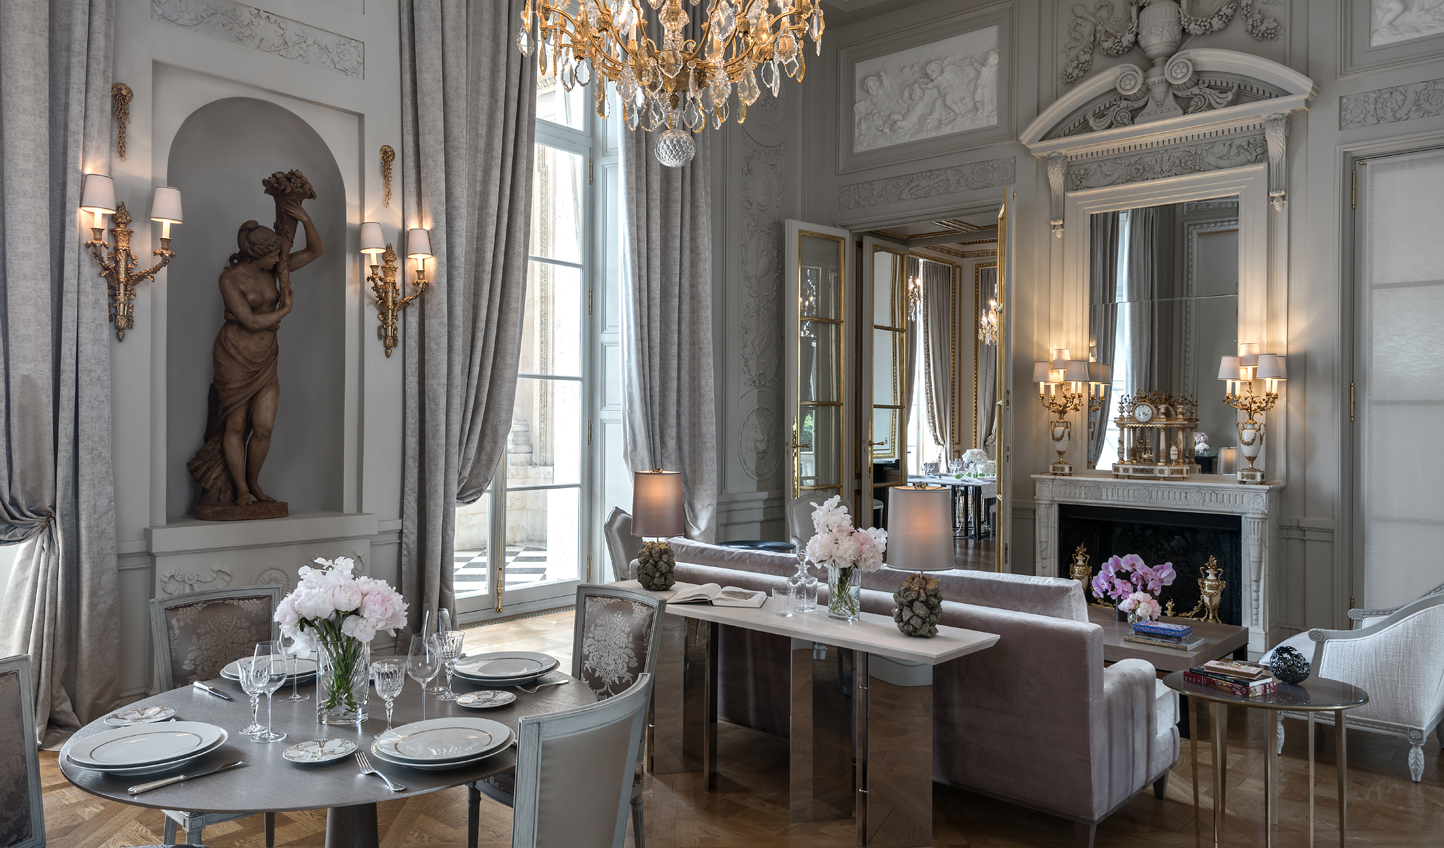 Undisputed elegance in Salon Marie Antoniette